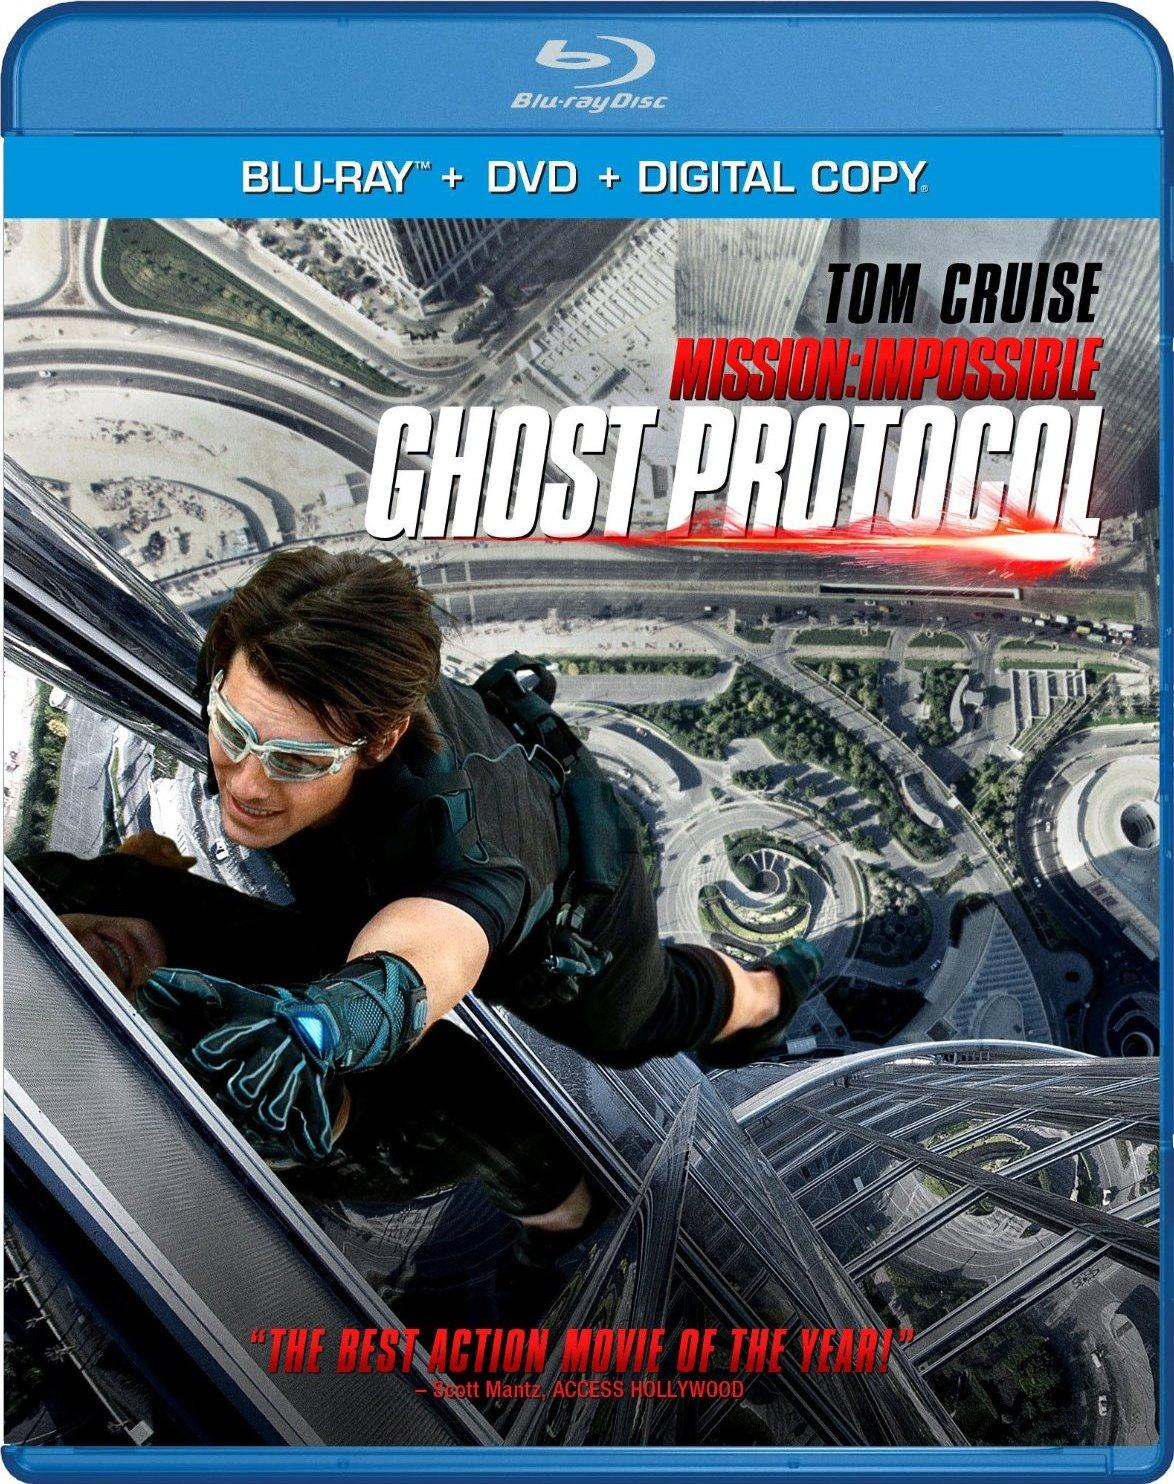 Mission: Impossible - Ghost Protocol Blu-Ray Review